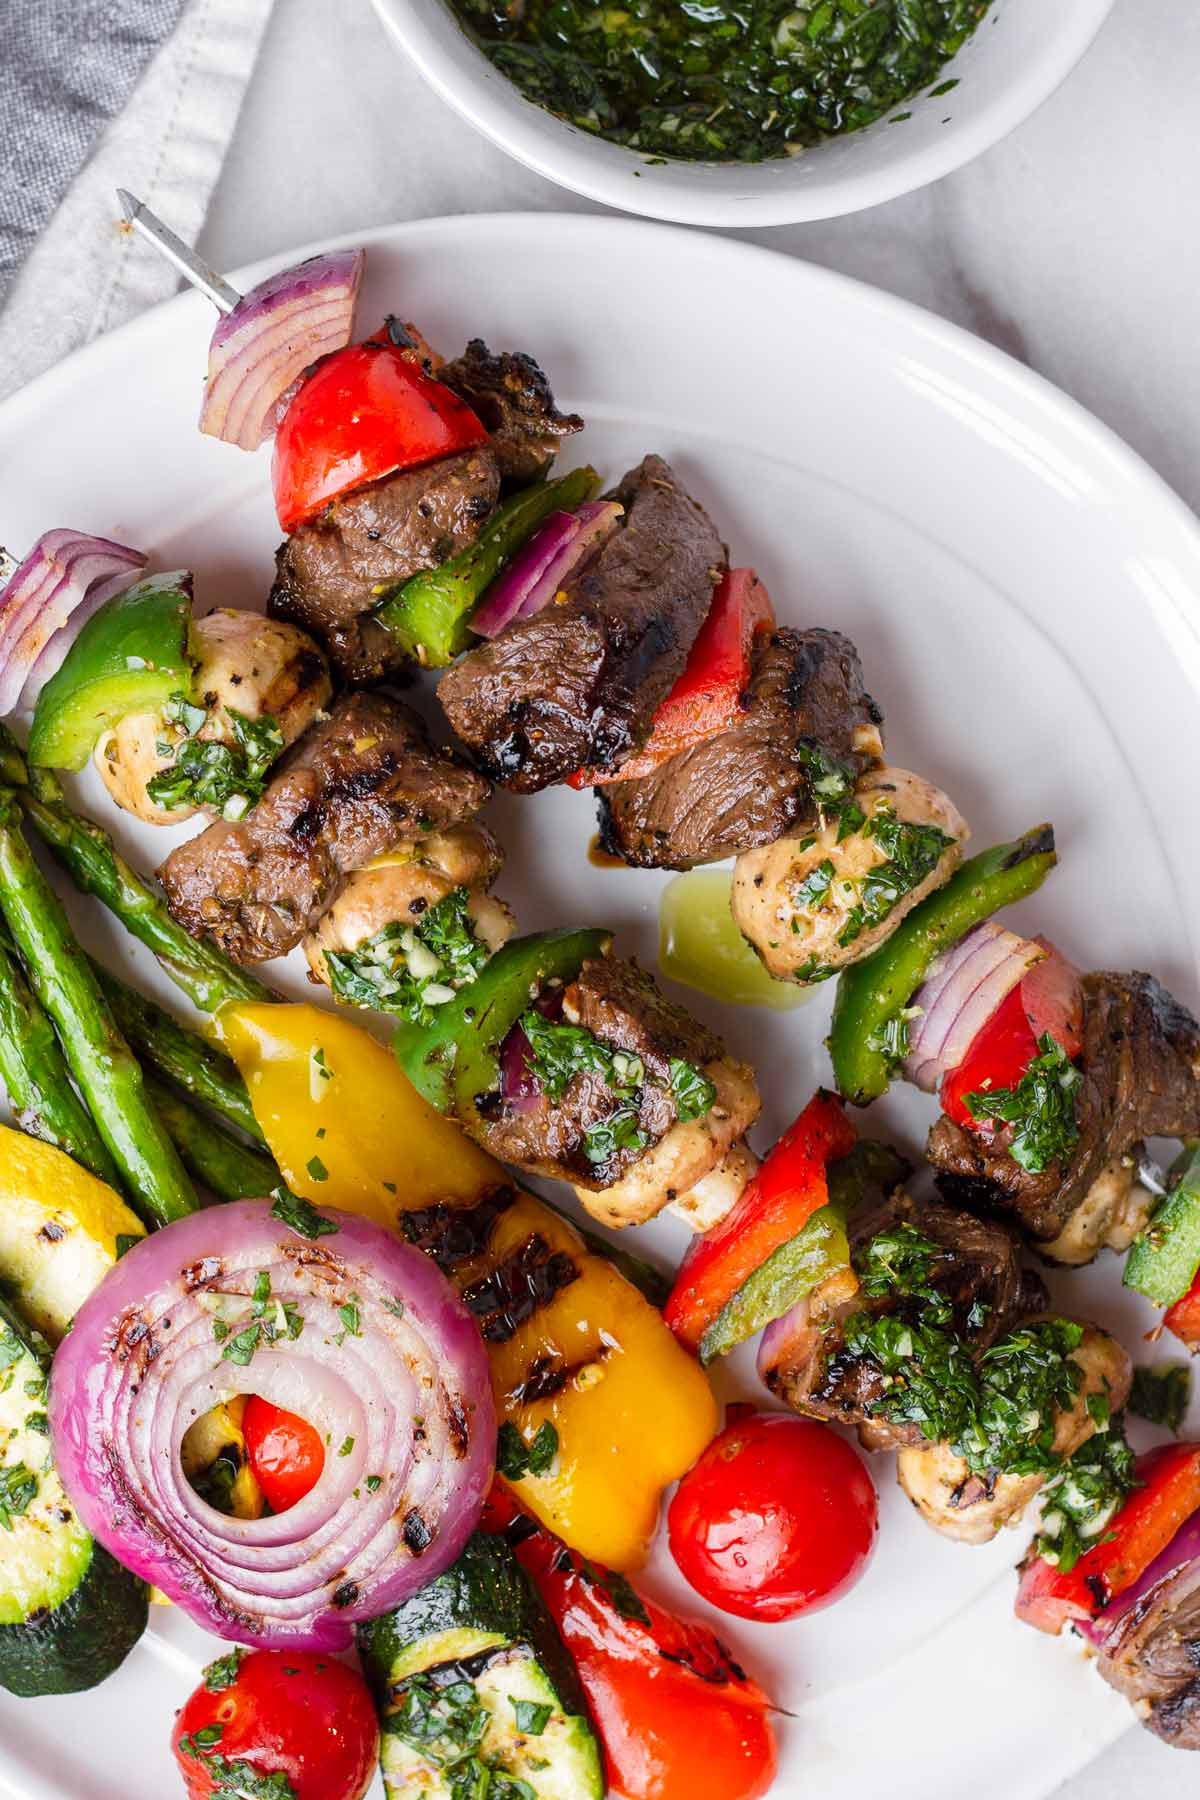 Plate with two meat and vegetable skewers and assorted seasonal veggies